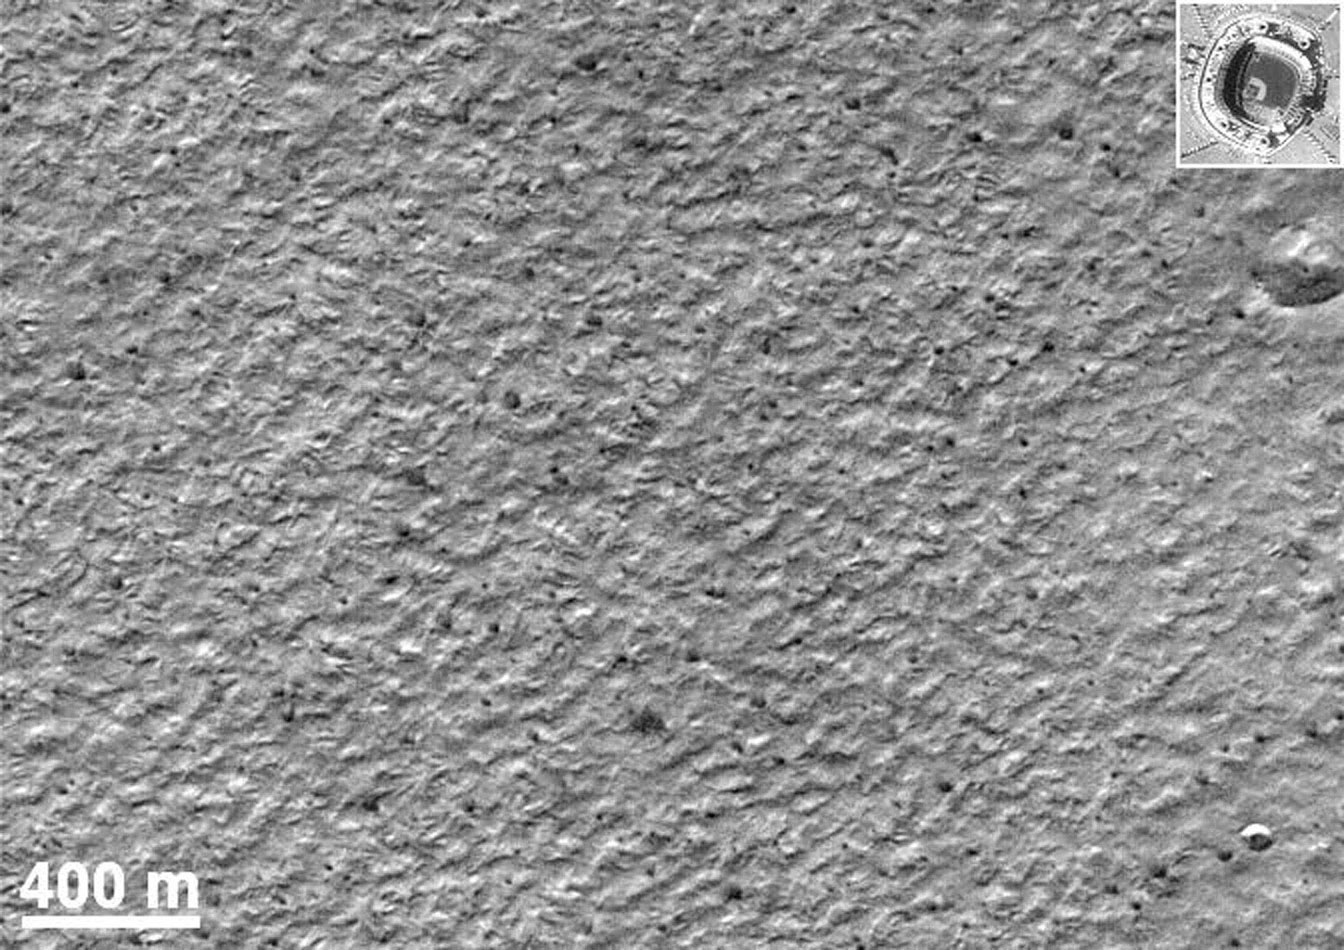 NASA's Mars Global Surveyor shows two craters, a very rare occurrence on Mars' south polar layered deposits.